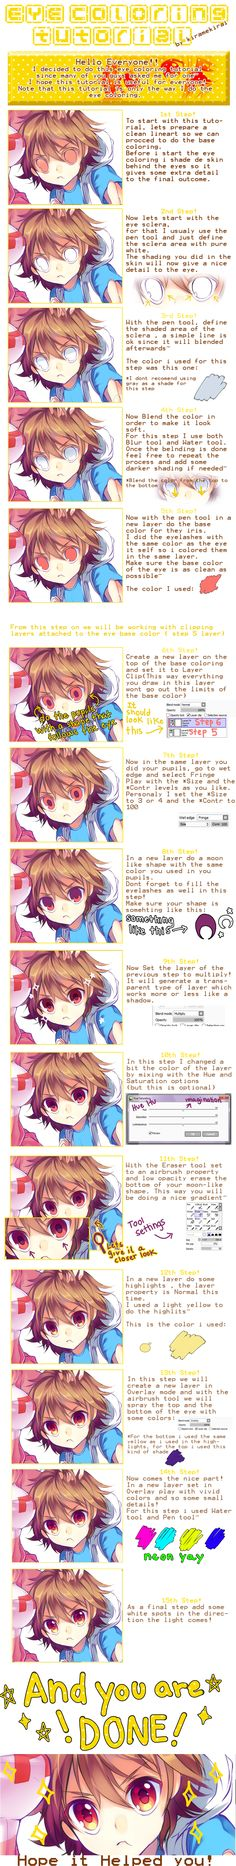 Eye Coloring Tutorial - Paint Tool SAI by KirameKirai.deviantart.com on @deviantART